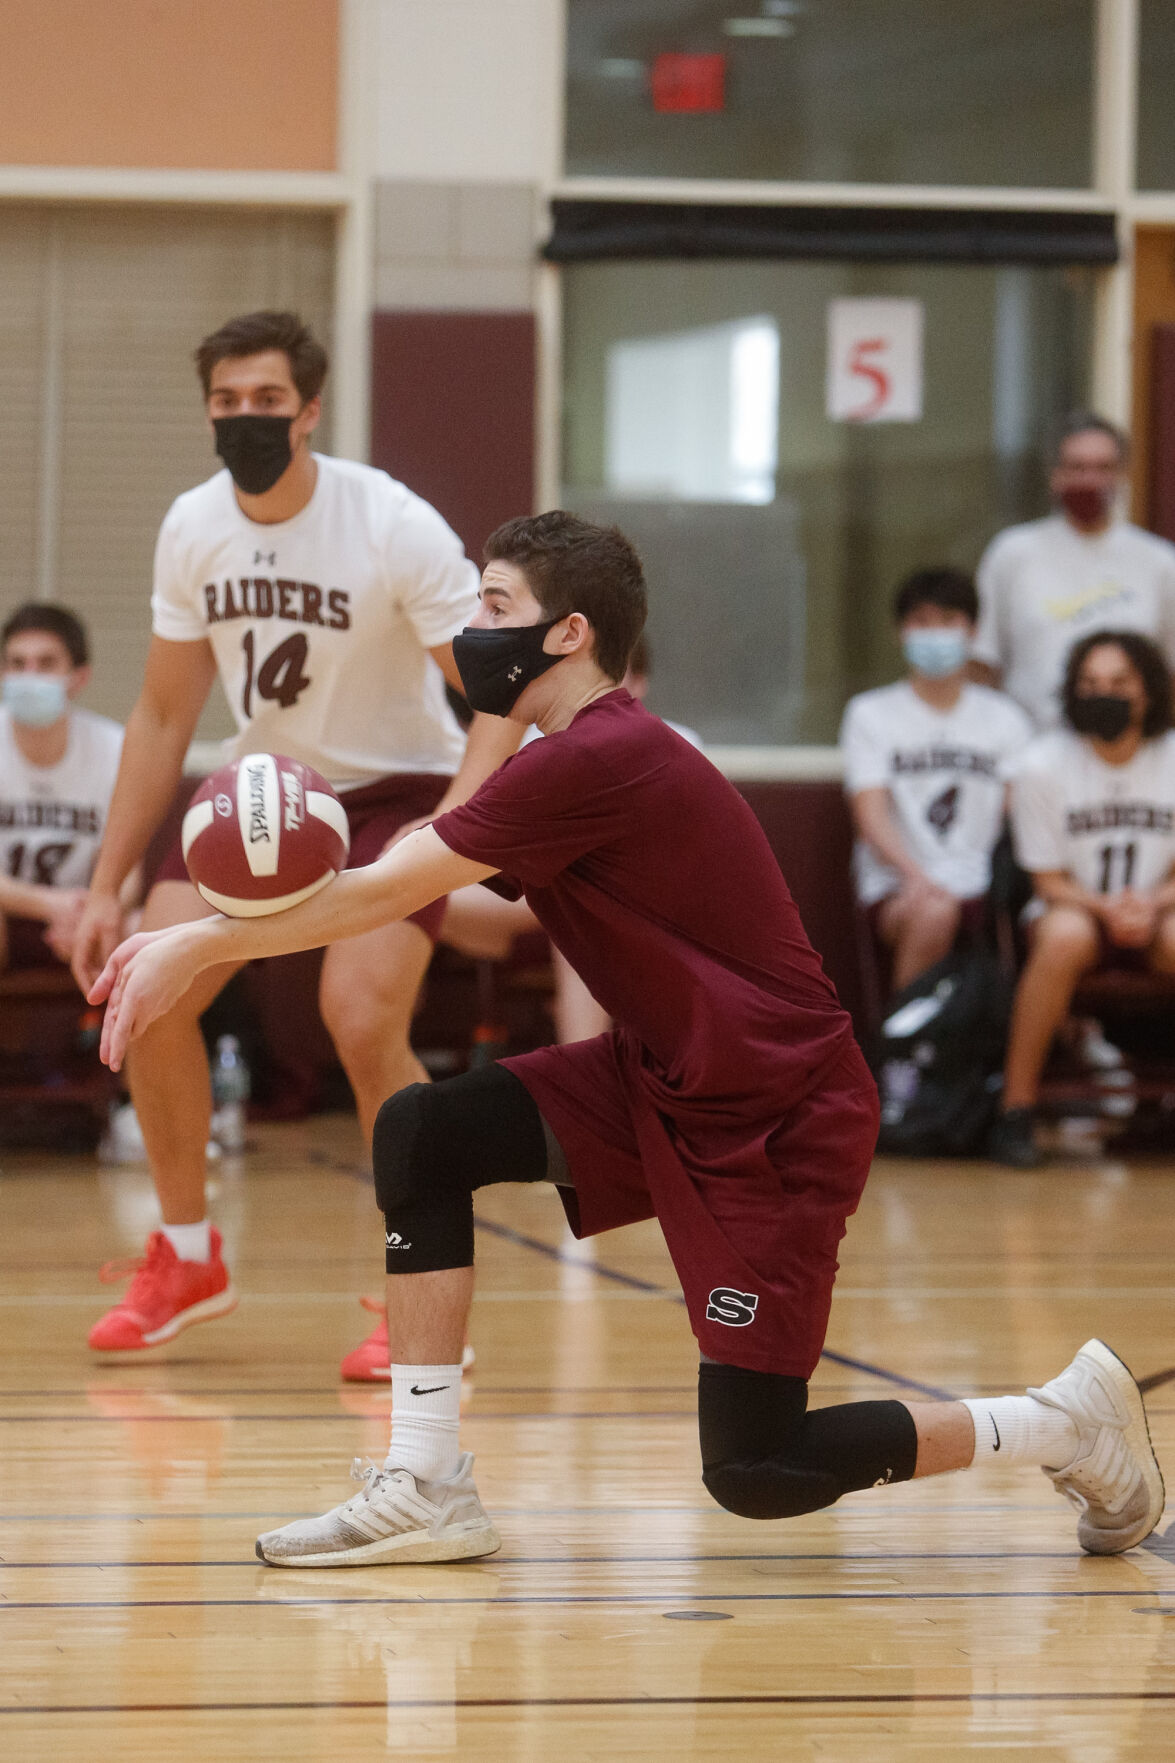 Ben Hoexter Scarsdale Volleyball